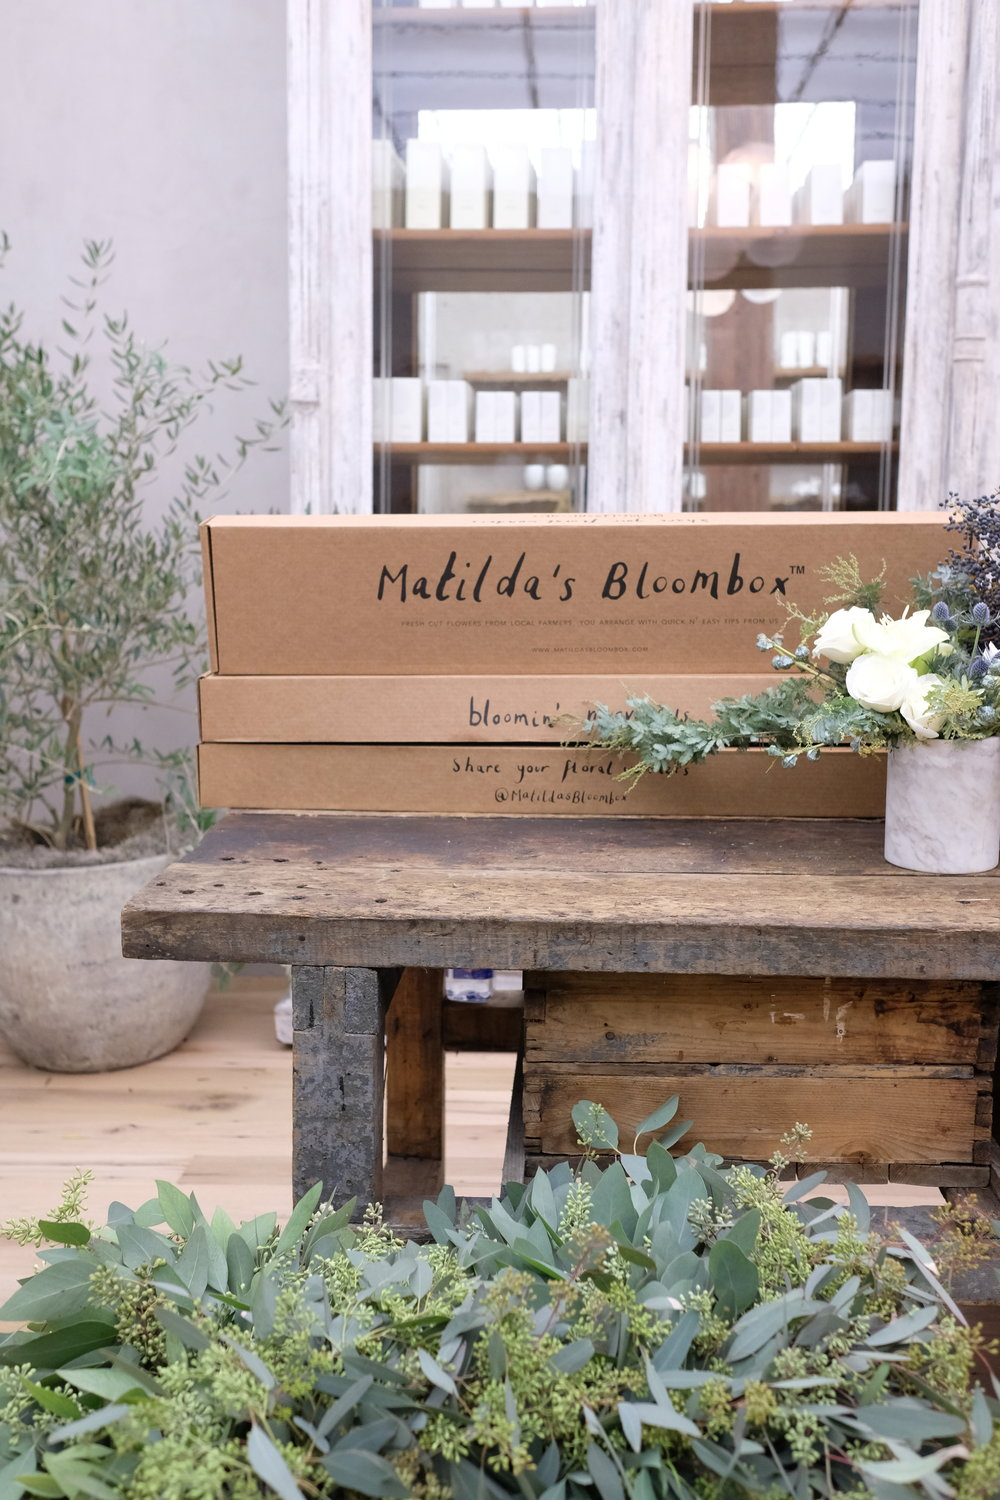 Matilda's Bloombox - Event Photography